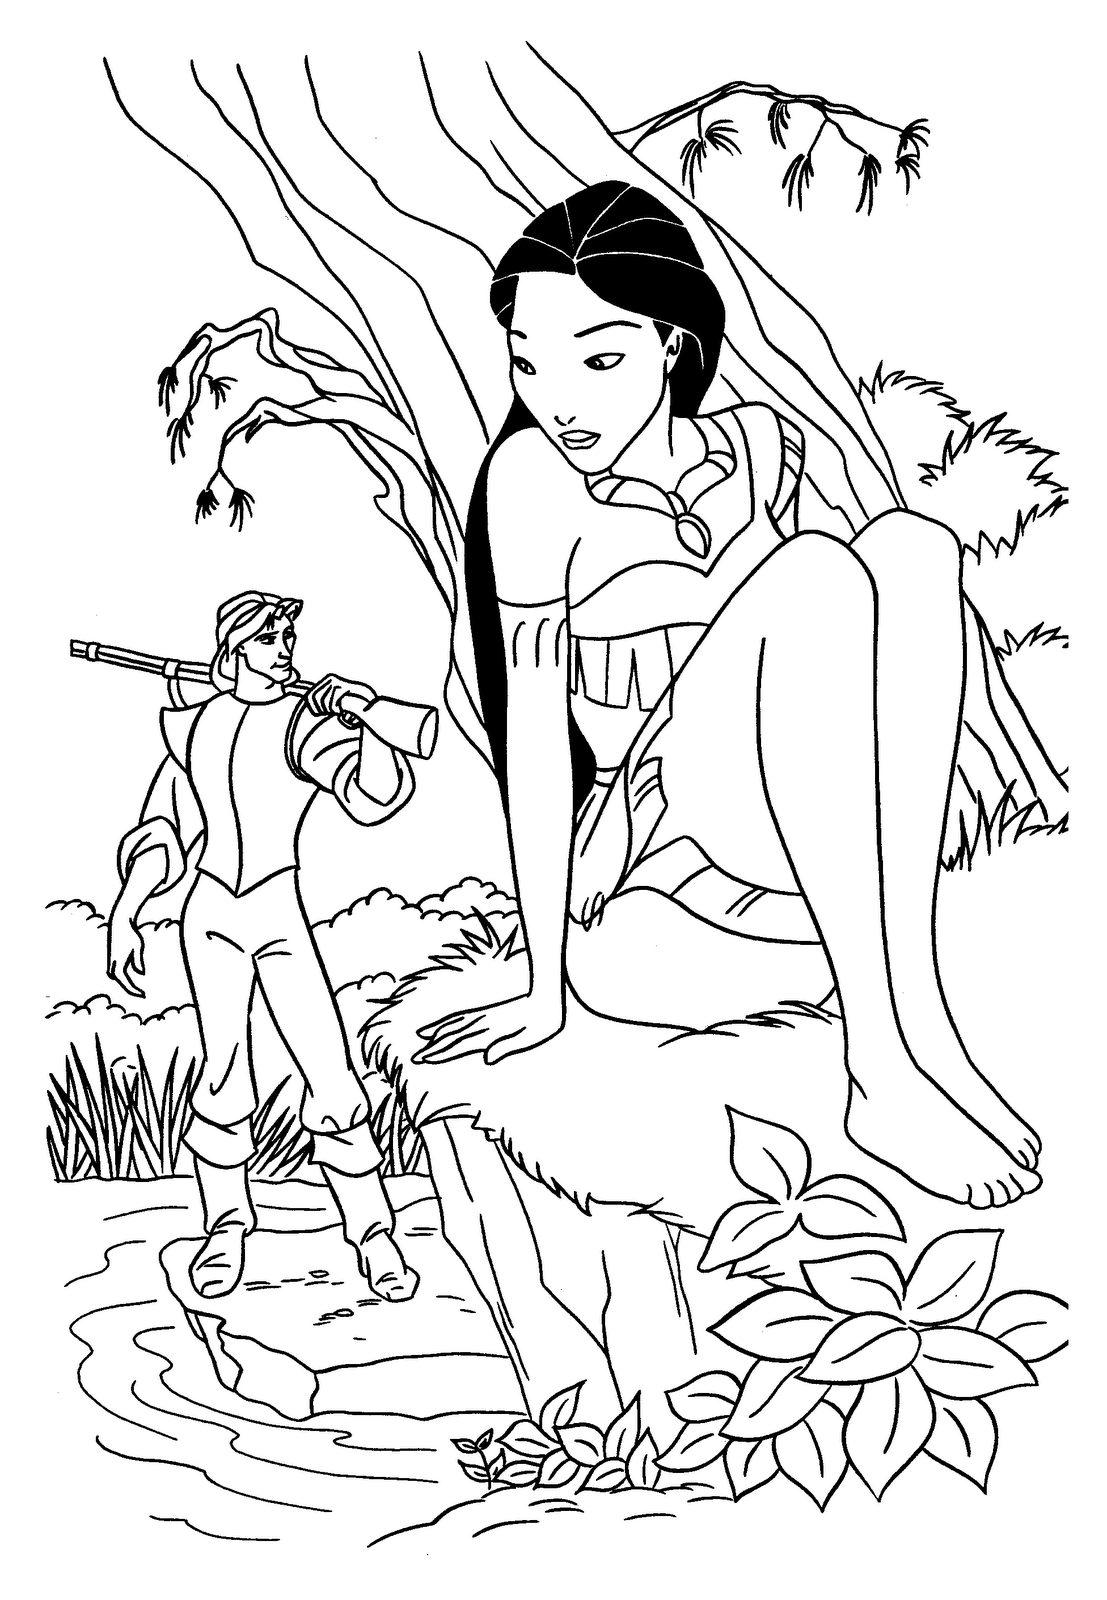 Coloring Pages For Kids Disney Princess Pocahontas ...